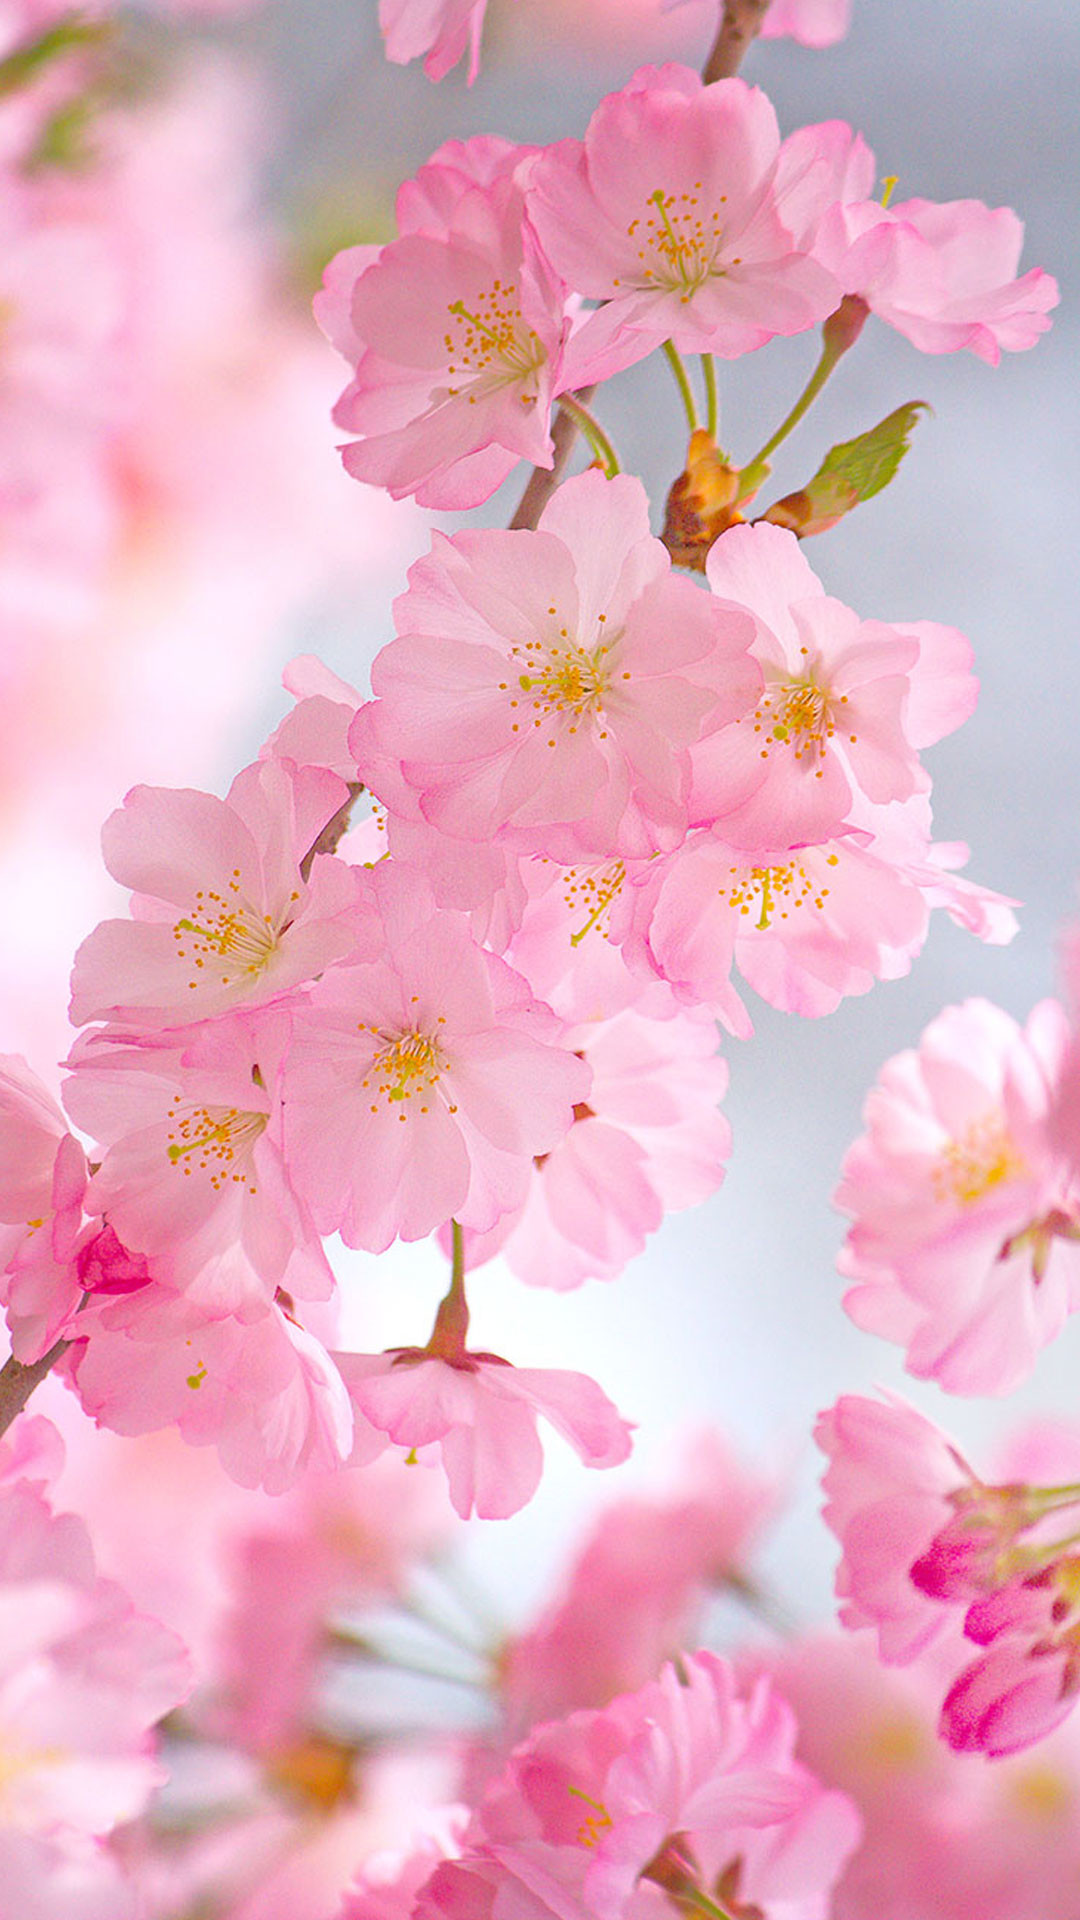 Quote Wallpapers For Iphone 6 Plus Cherry Blossoms Iphone Wallpaper 75 Images